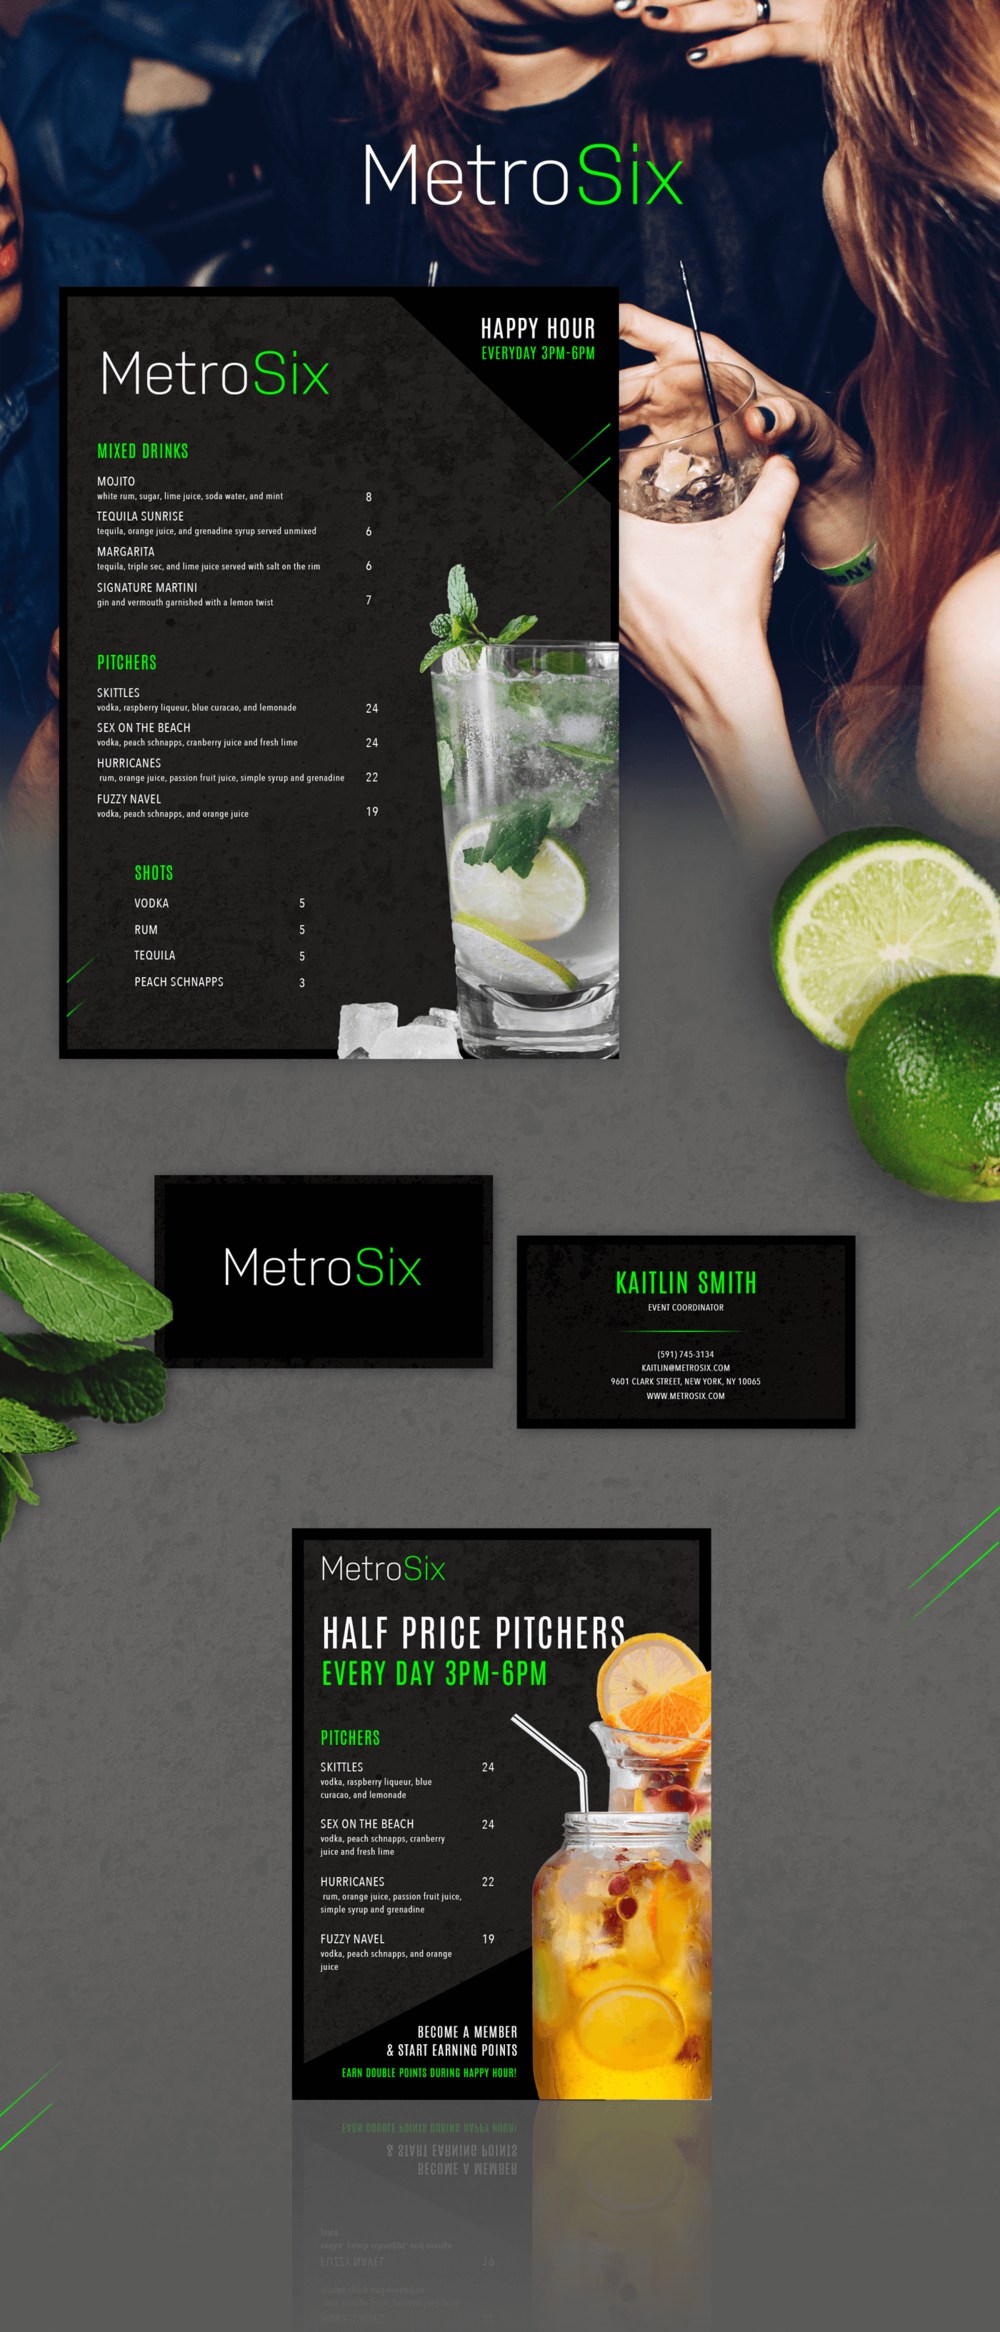 MetroSix.Menu1_ForWebsite-(1) (1).png